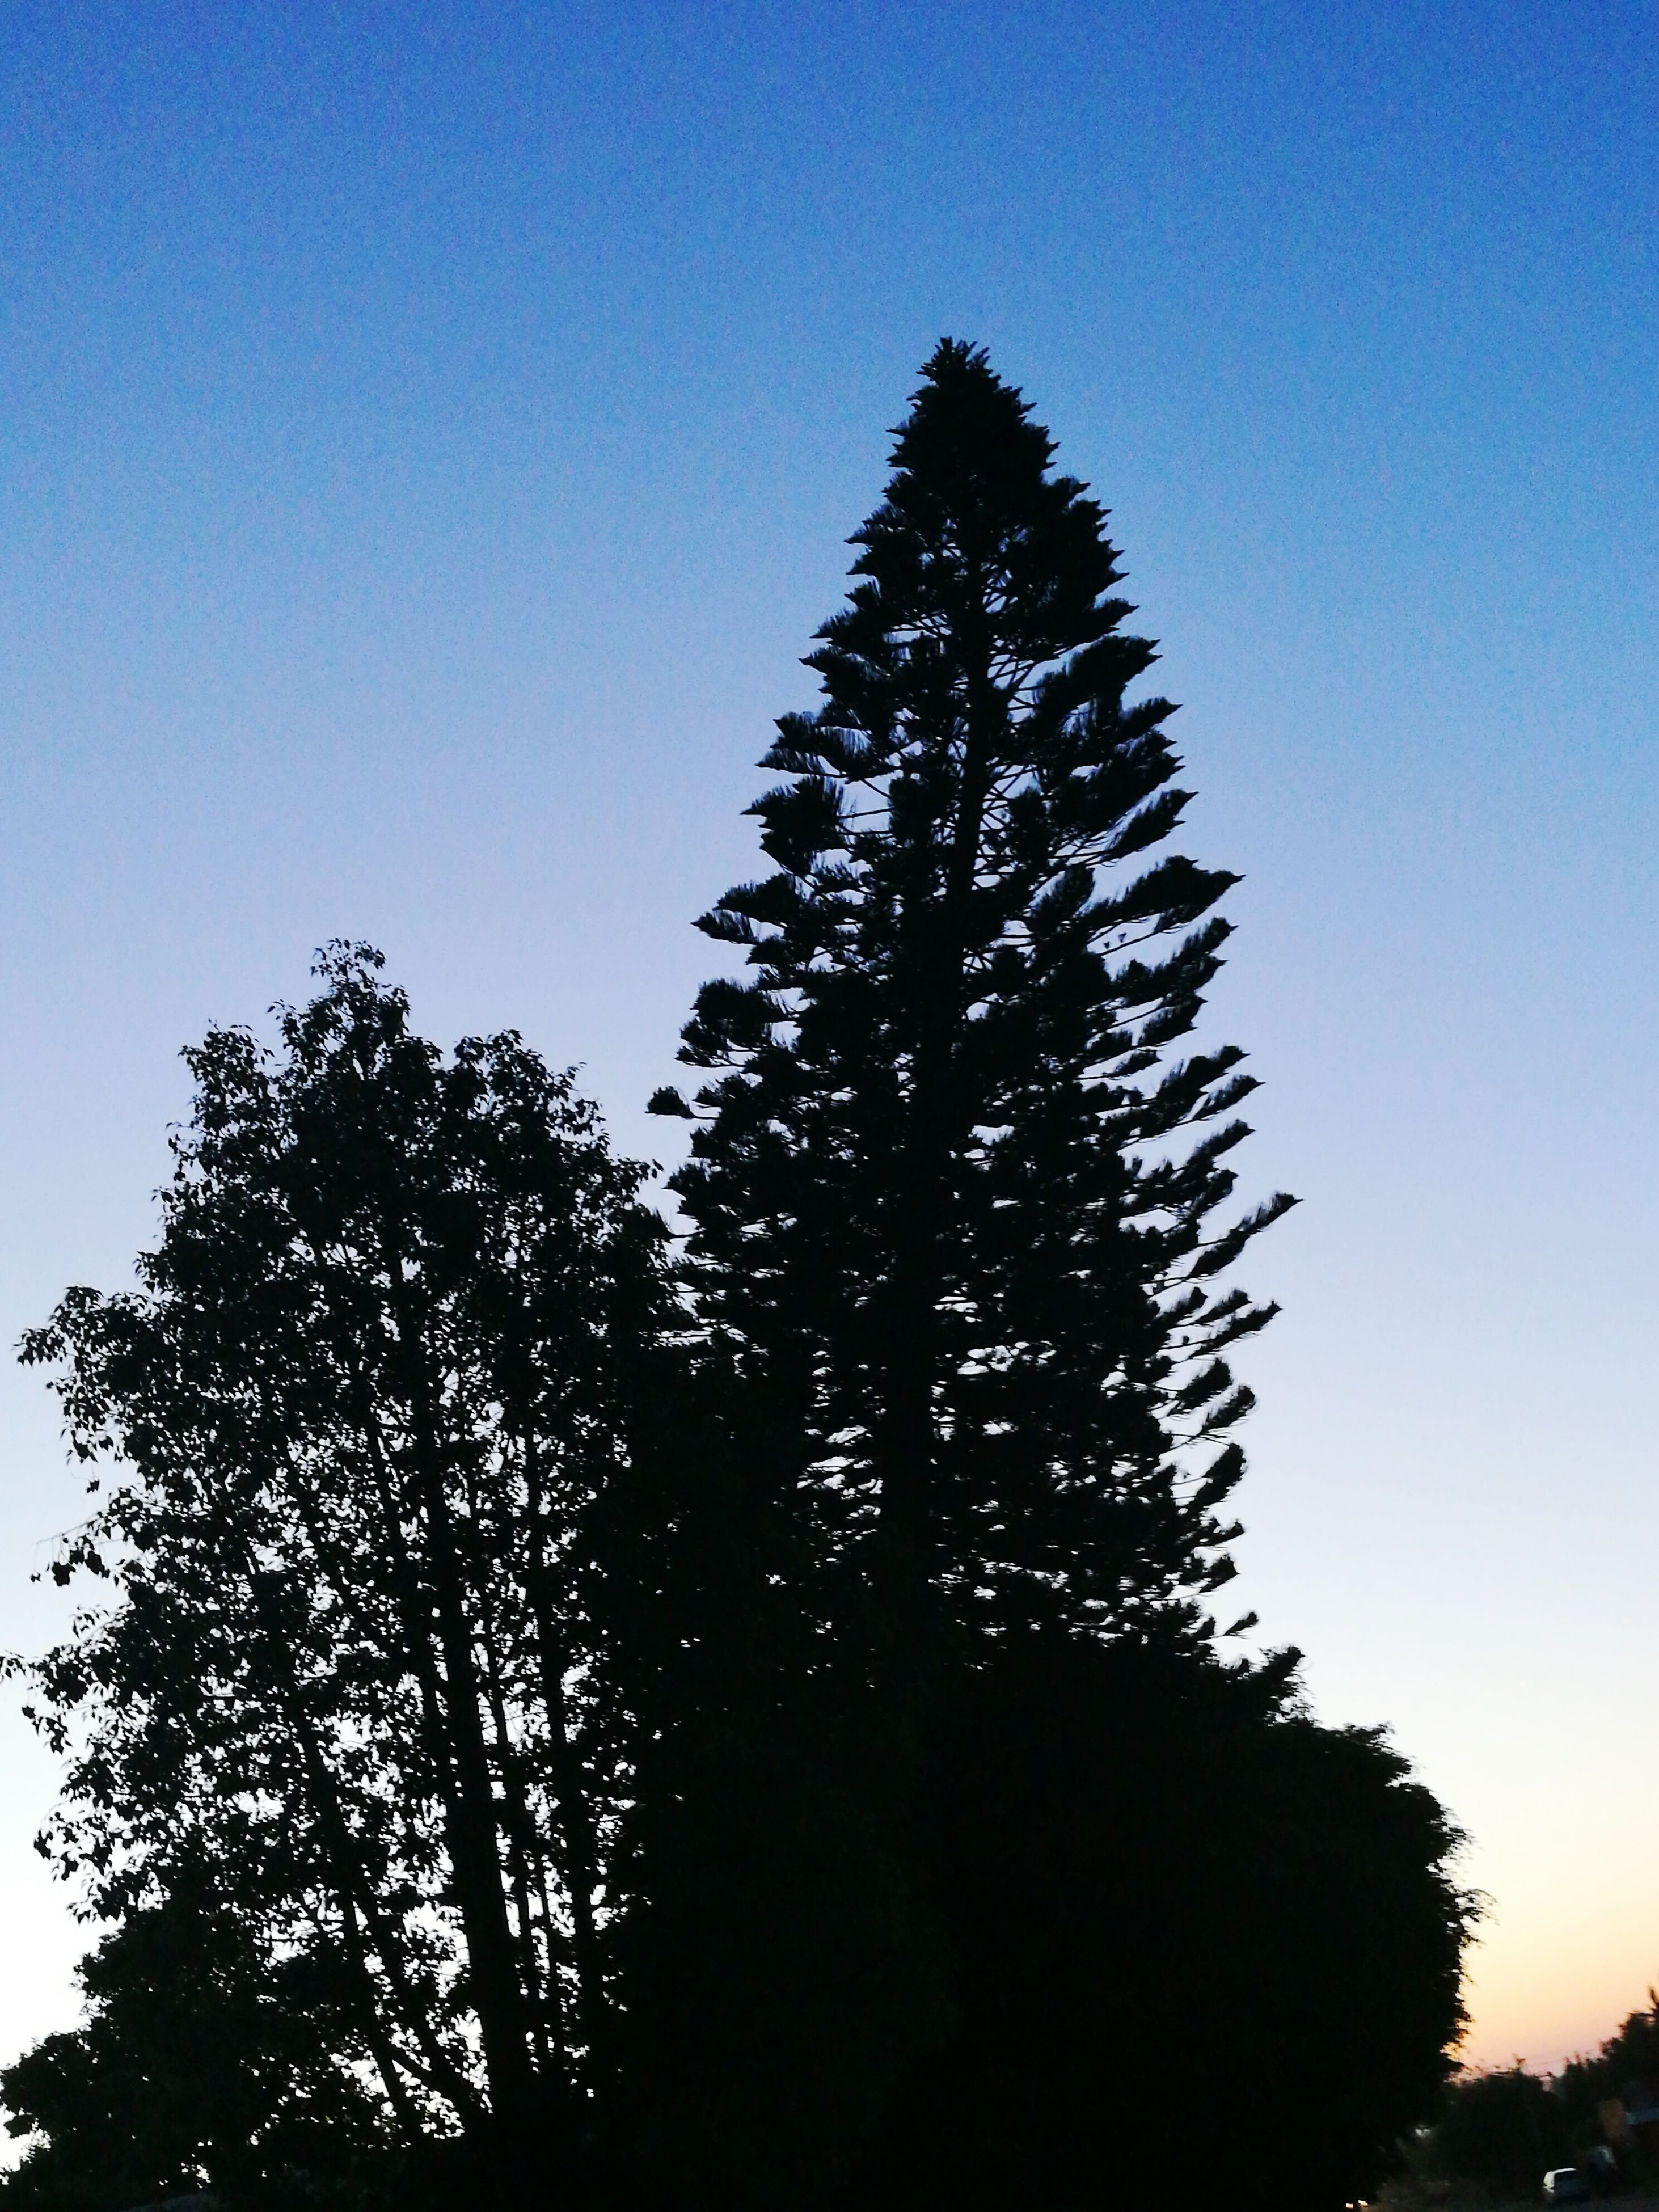 tree, clear sky, low angle view, growth, nature, forest, silhouette, blue, no people, beauty in nature, outdoors, sky, day, high